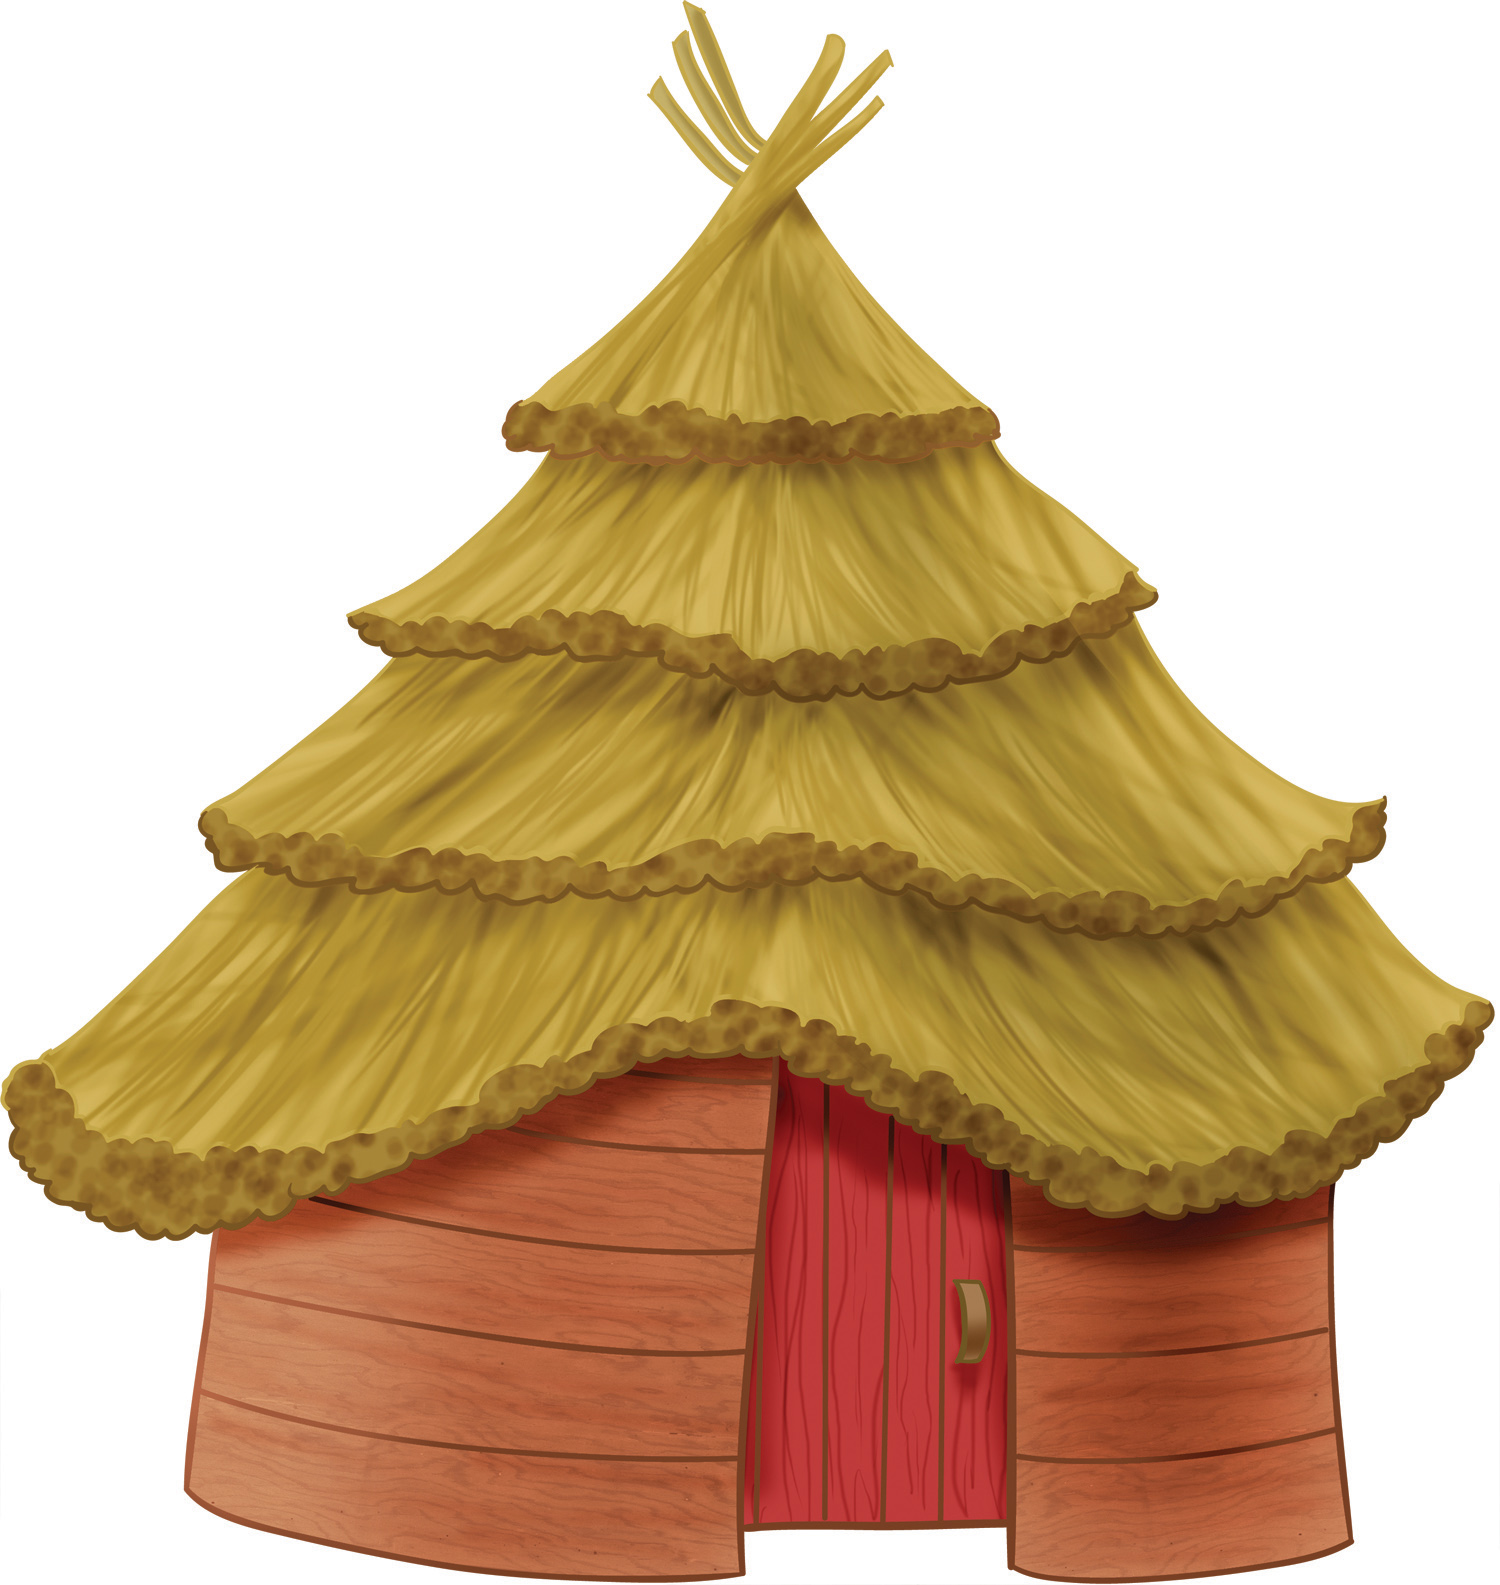 Hut Black And White Clipart - Clipart Suggest